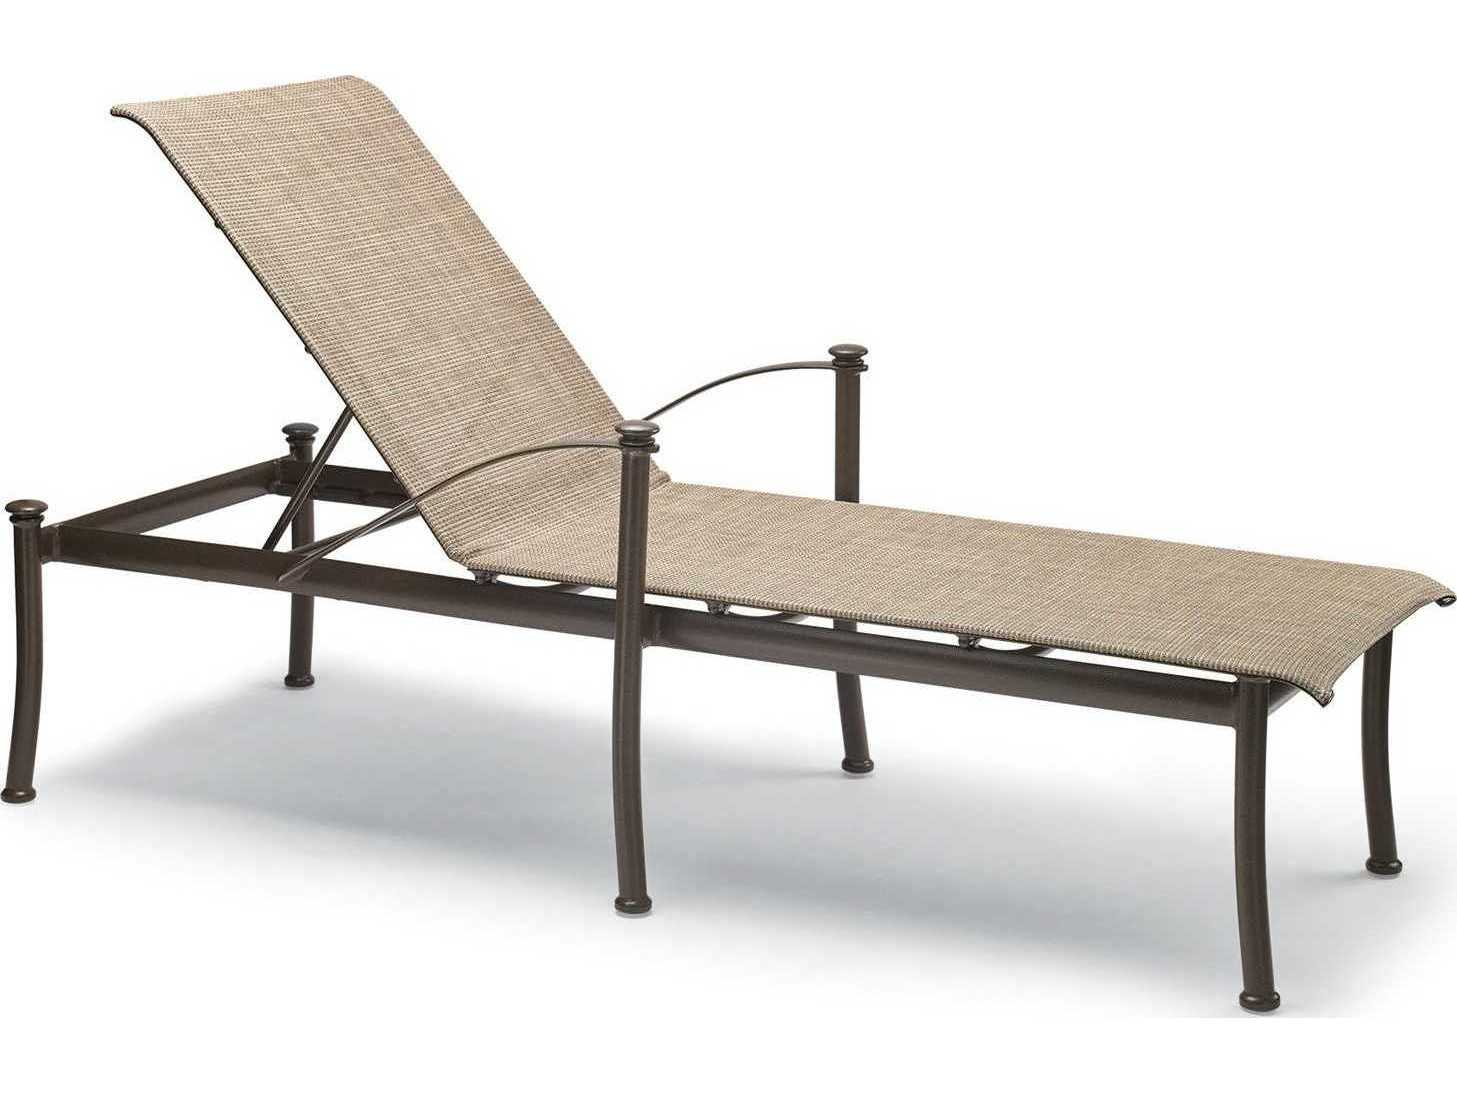 Winston Palazzo Sling Cast Aluminum Arm Chaise Lounge: Winston Catania Sling Aluminum Arm Stackable Chaise